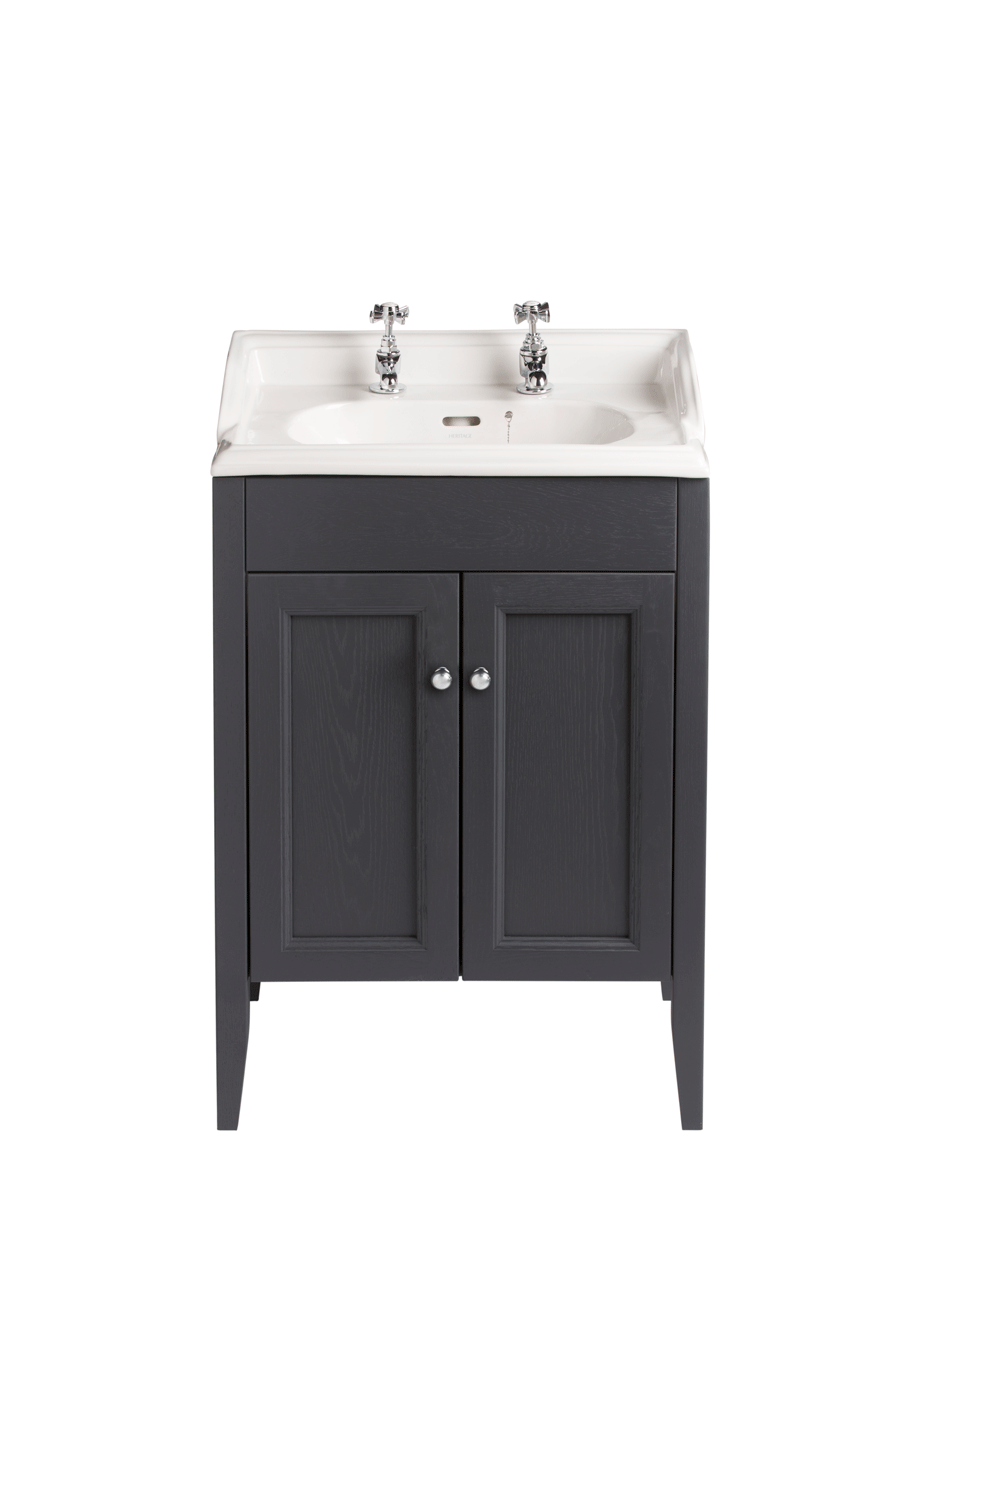 classic dorchester vanity from heritage bathrooms available from